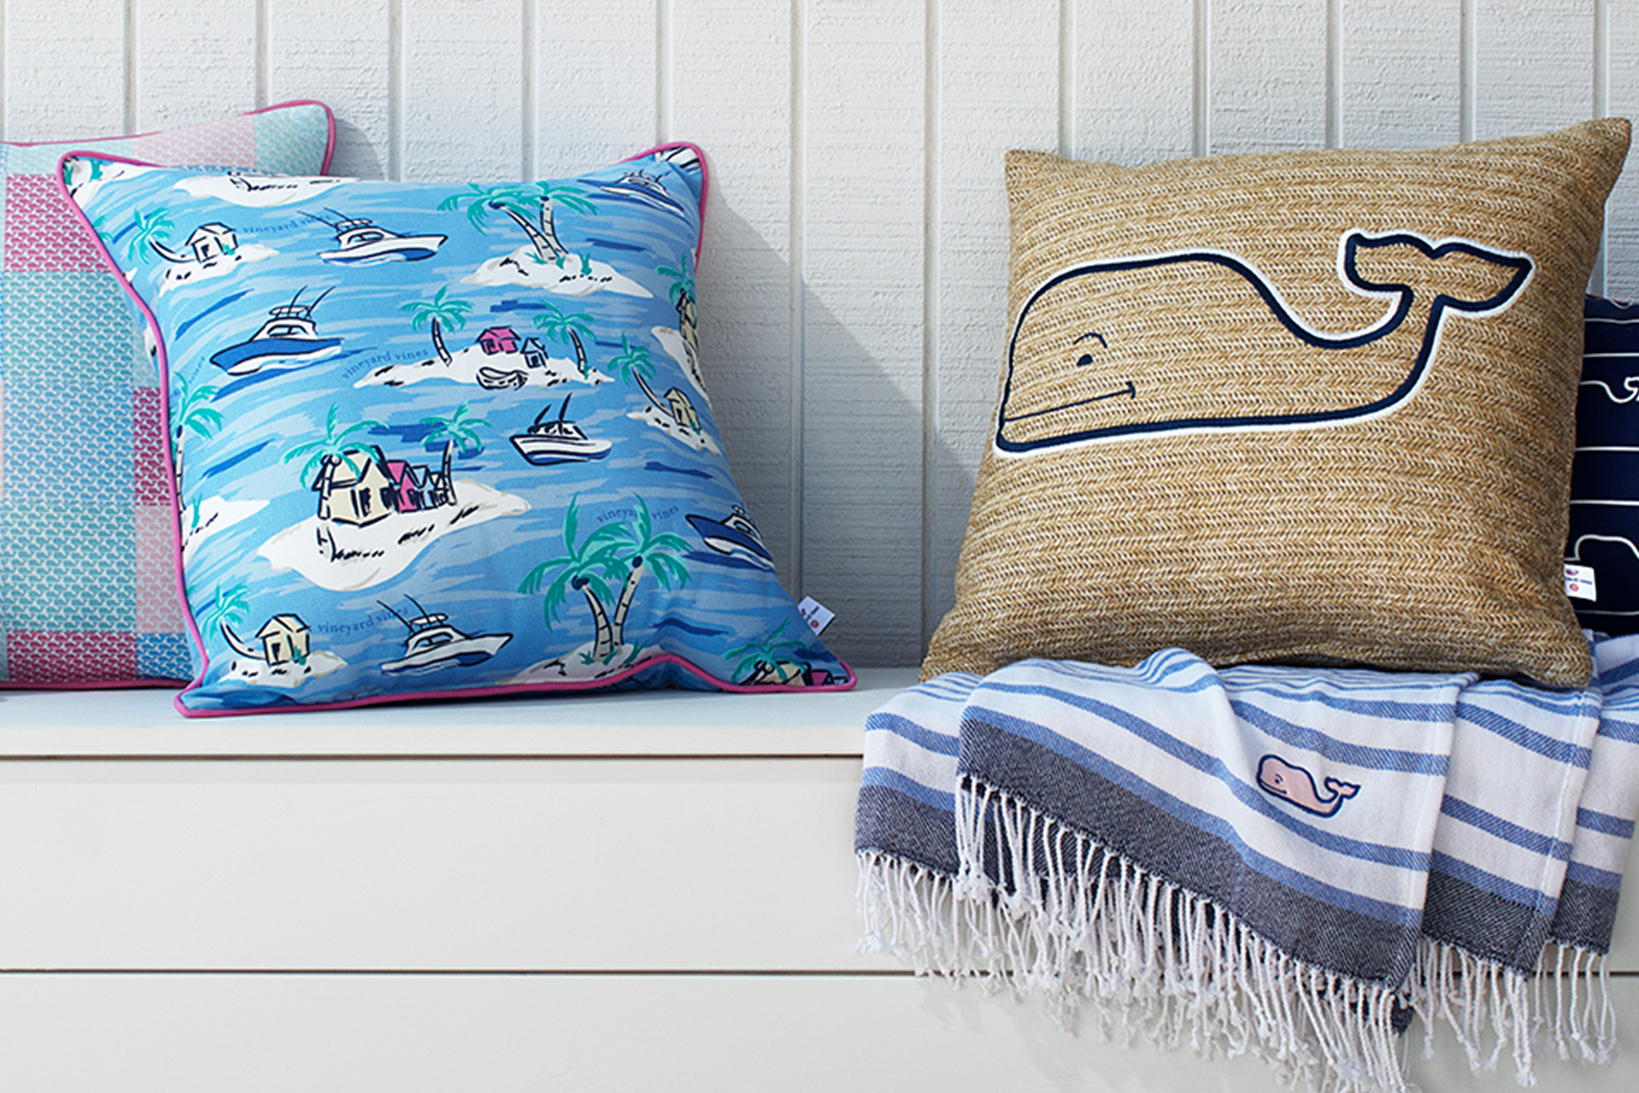 7a176d4c9 Perfect for the whole family, the Vineyard Vines for Target collection  includes clothing and swimwear for women, men, kids, babies, and even some  ...